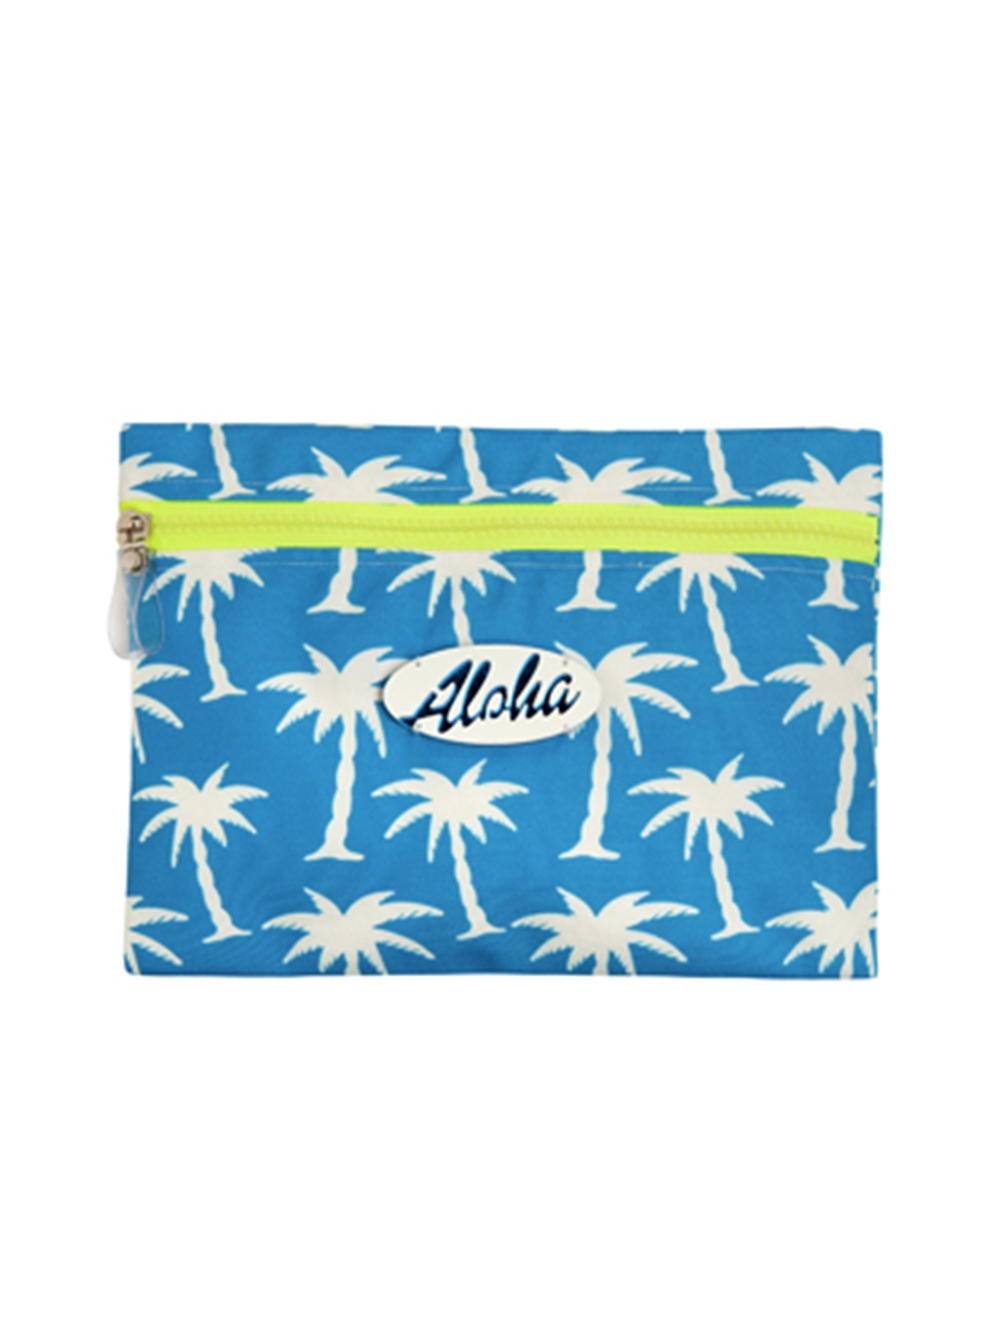 POCHETTE ALIKI WATERPROOF